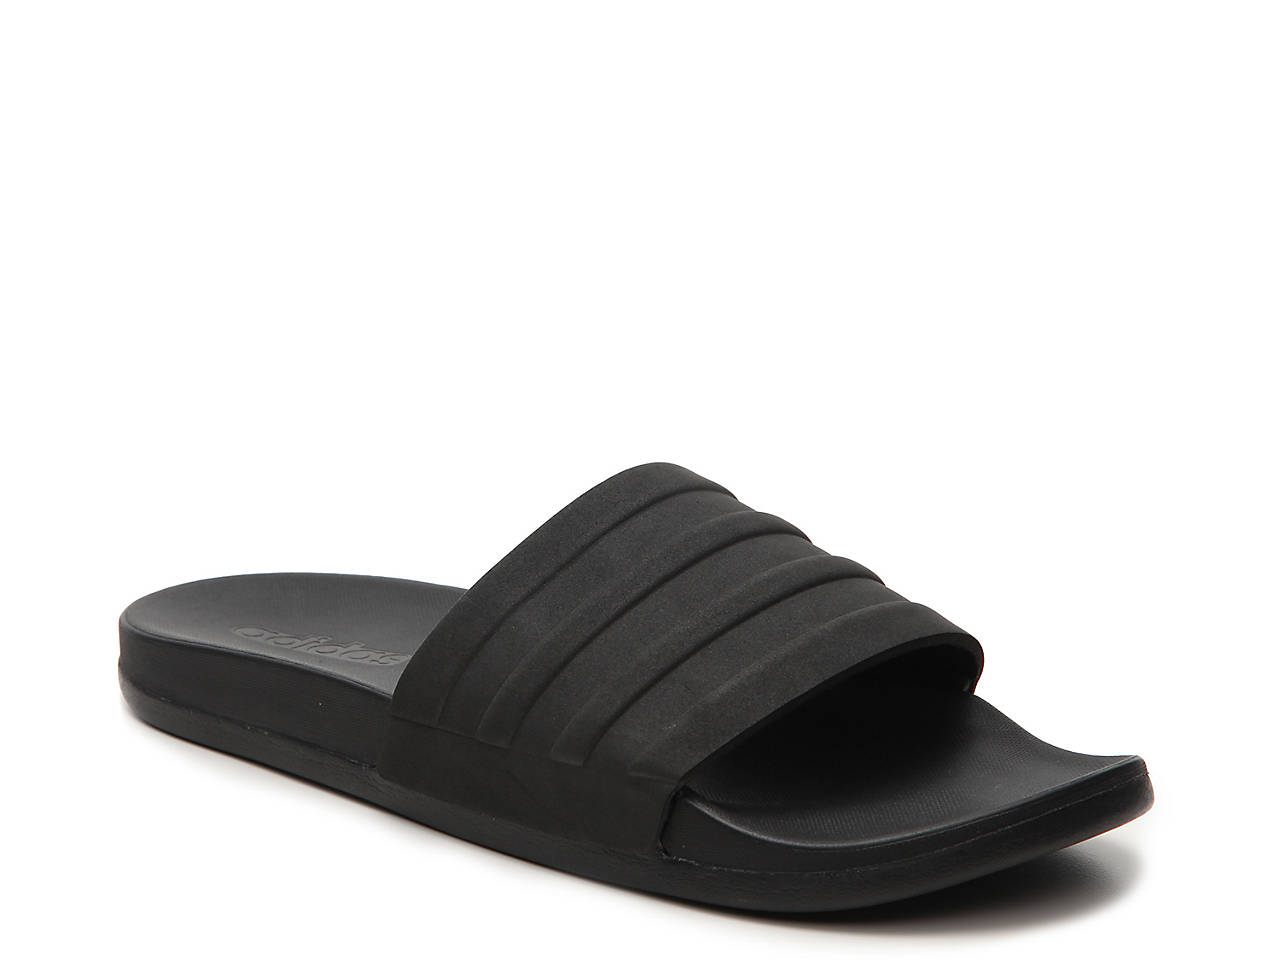 low priced 782de d48f8 adidas. Adilette Cloudfoam Slide Sandal - Men s